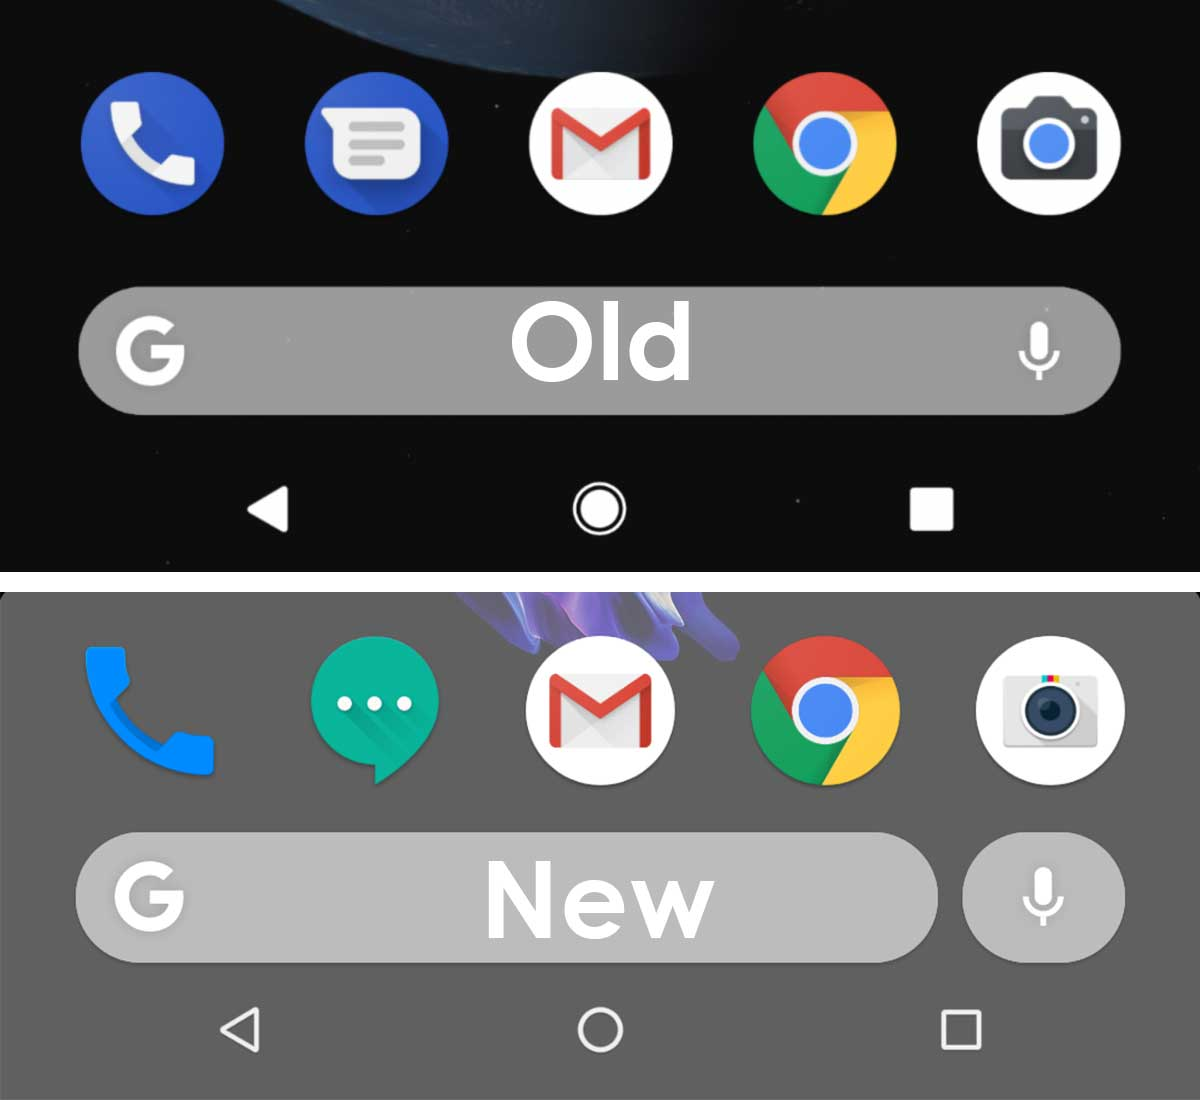 How to Install Pixel 3 Launcher (New Dock Style)